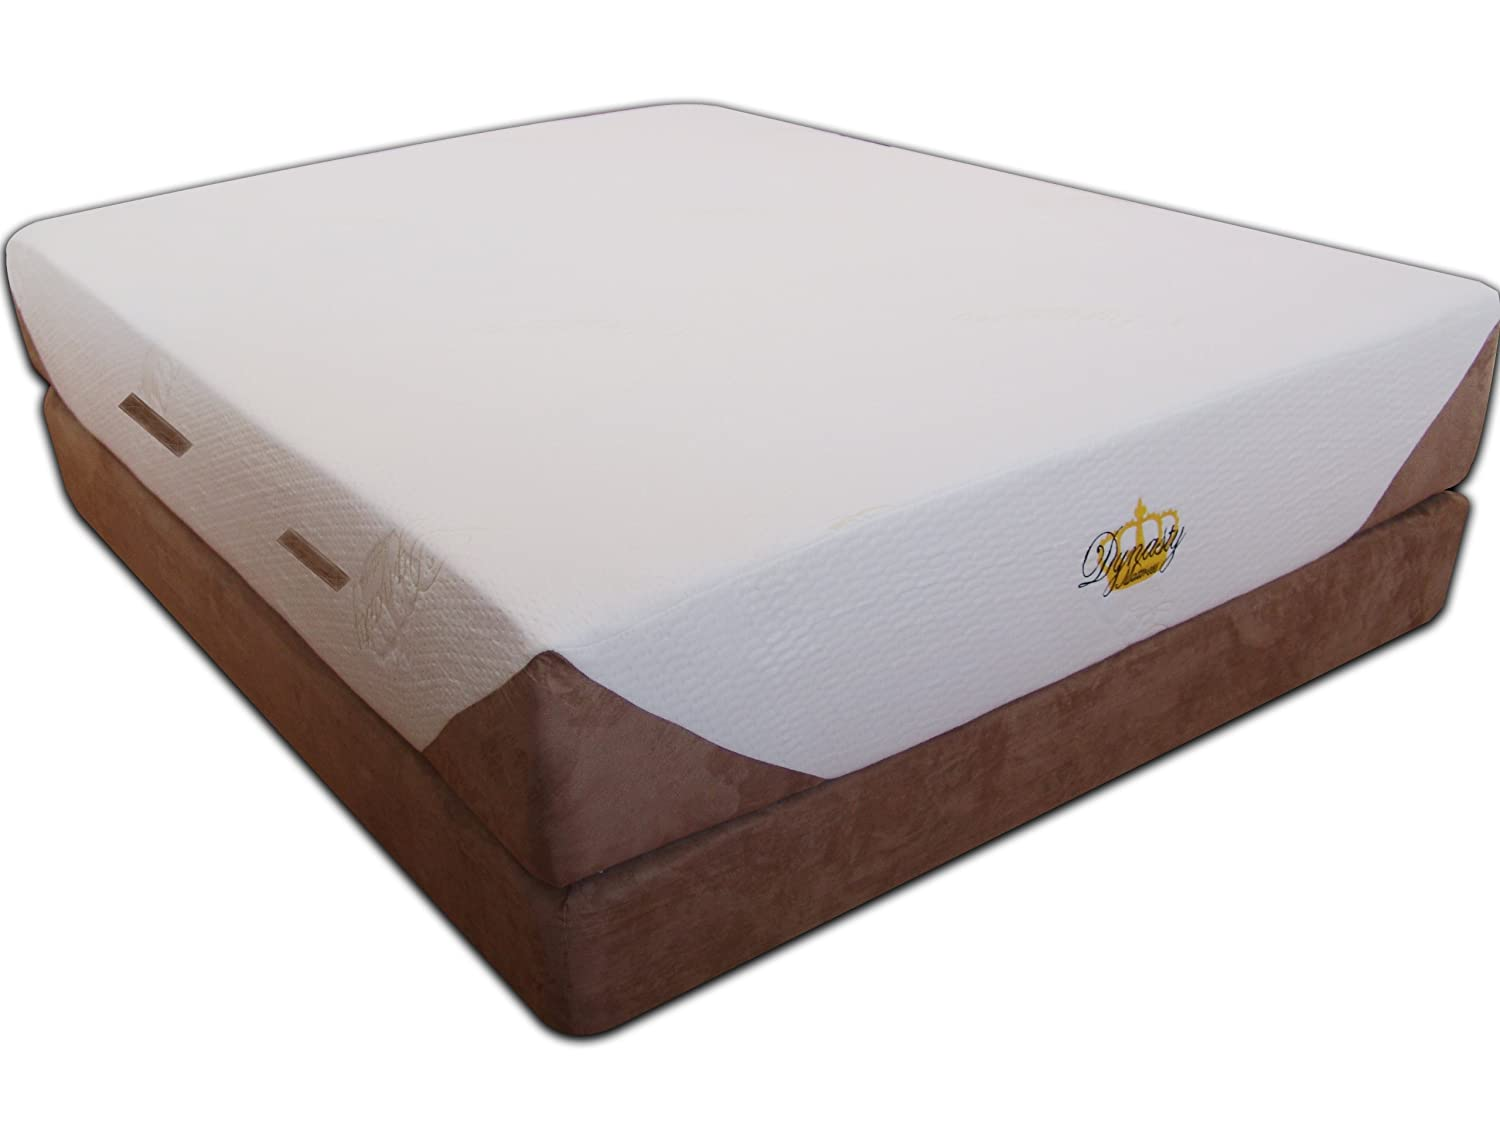 Sleep Innovations Mattress Costco furniture mattresses box springs mattresses memory foam mattresses